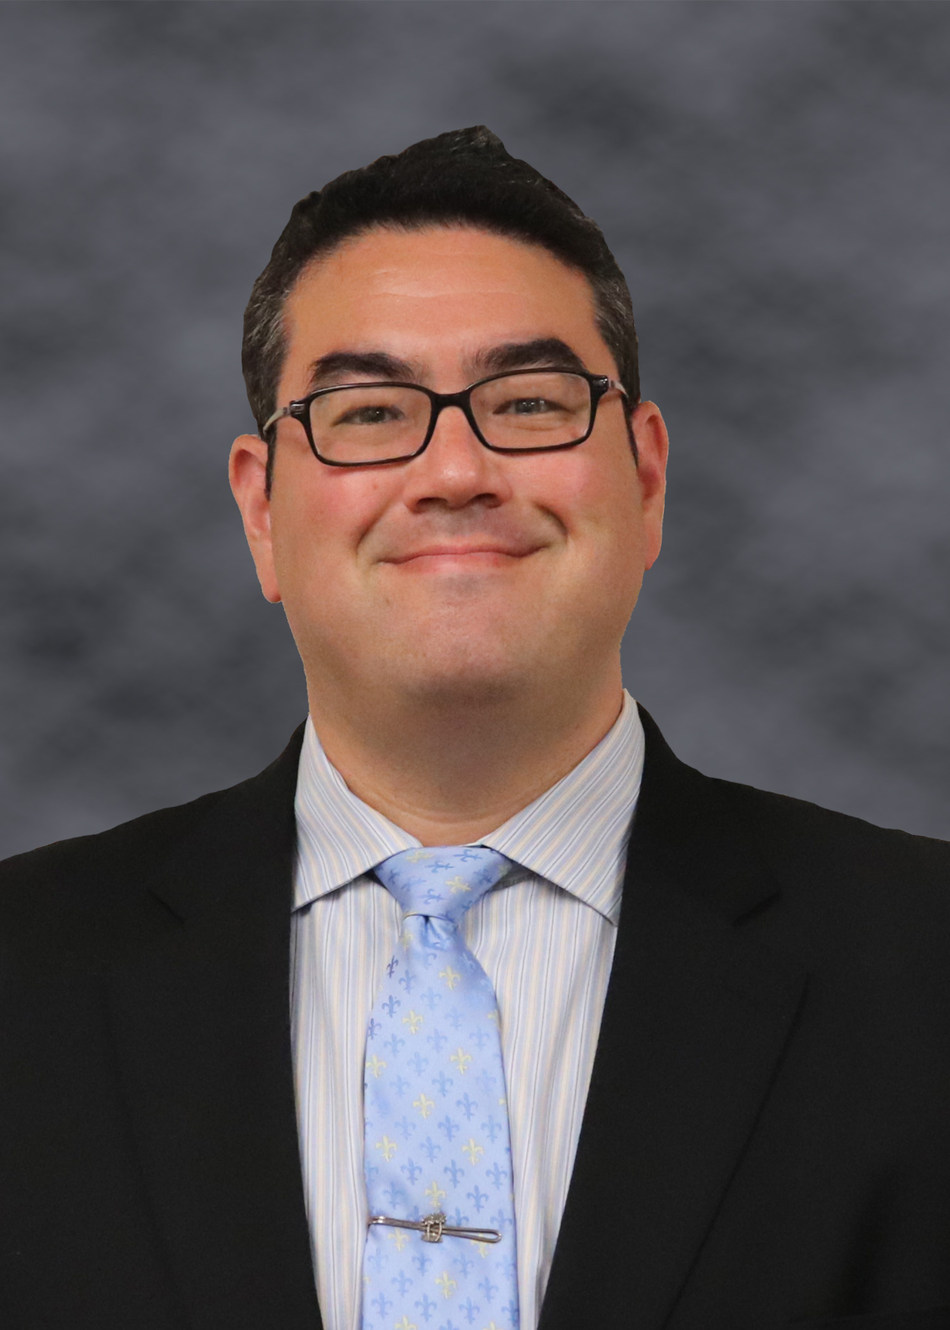 You're In Good Hands: Hope Orthopedics selects Dr. Aaron Karlen